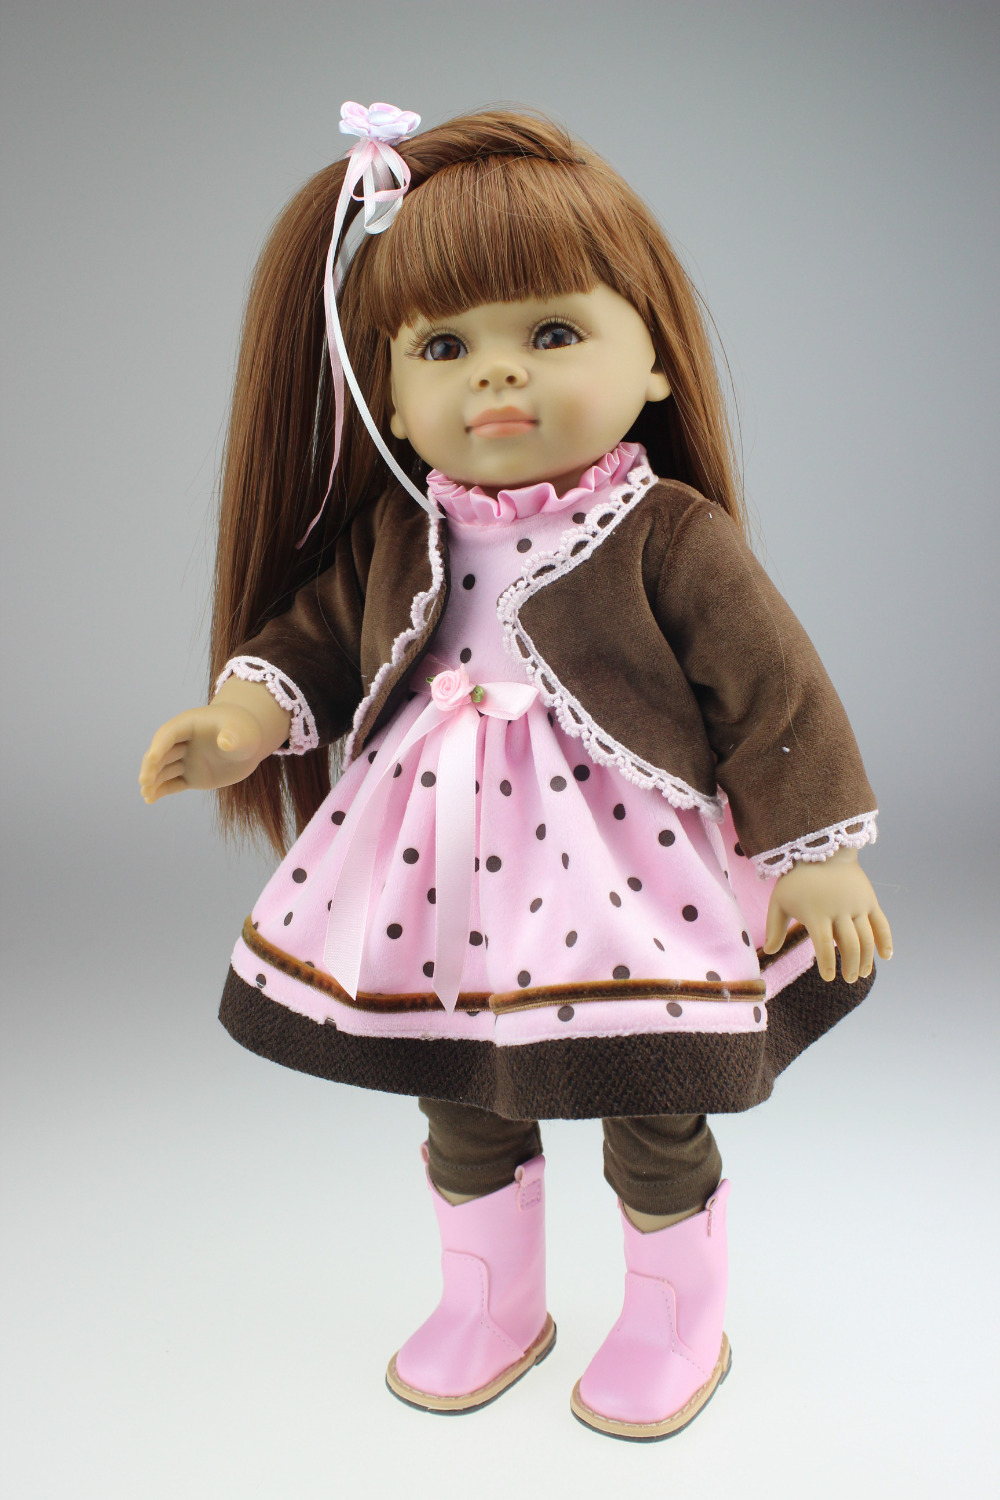 free shipping 18inches American girl doll Journey Girl Dollie& me fashion doll Christamas Gift great girl gift 2015new 18inches american girl doll journey girl dollie